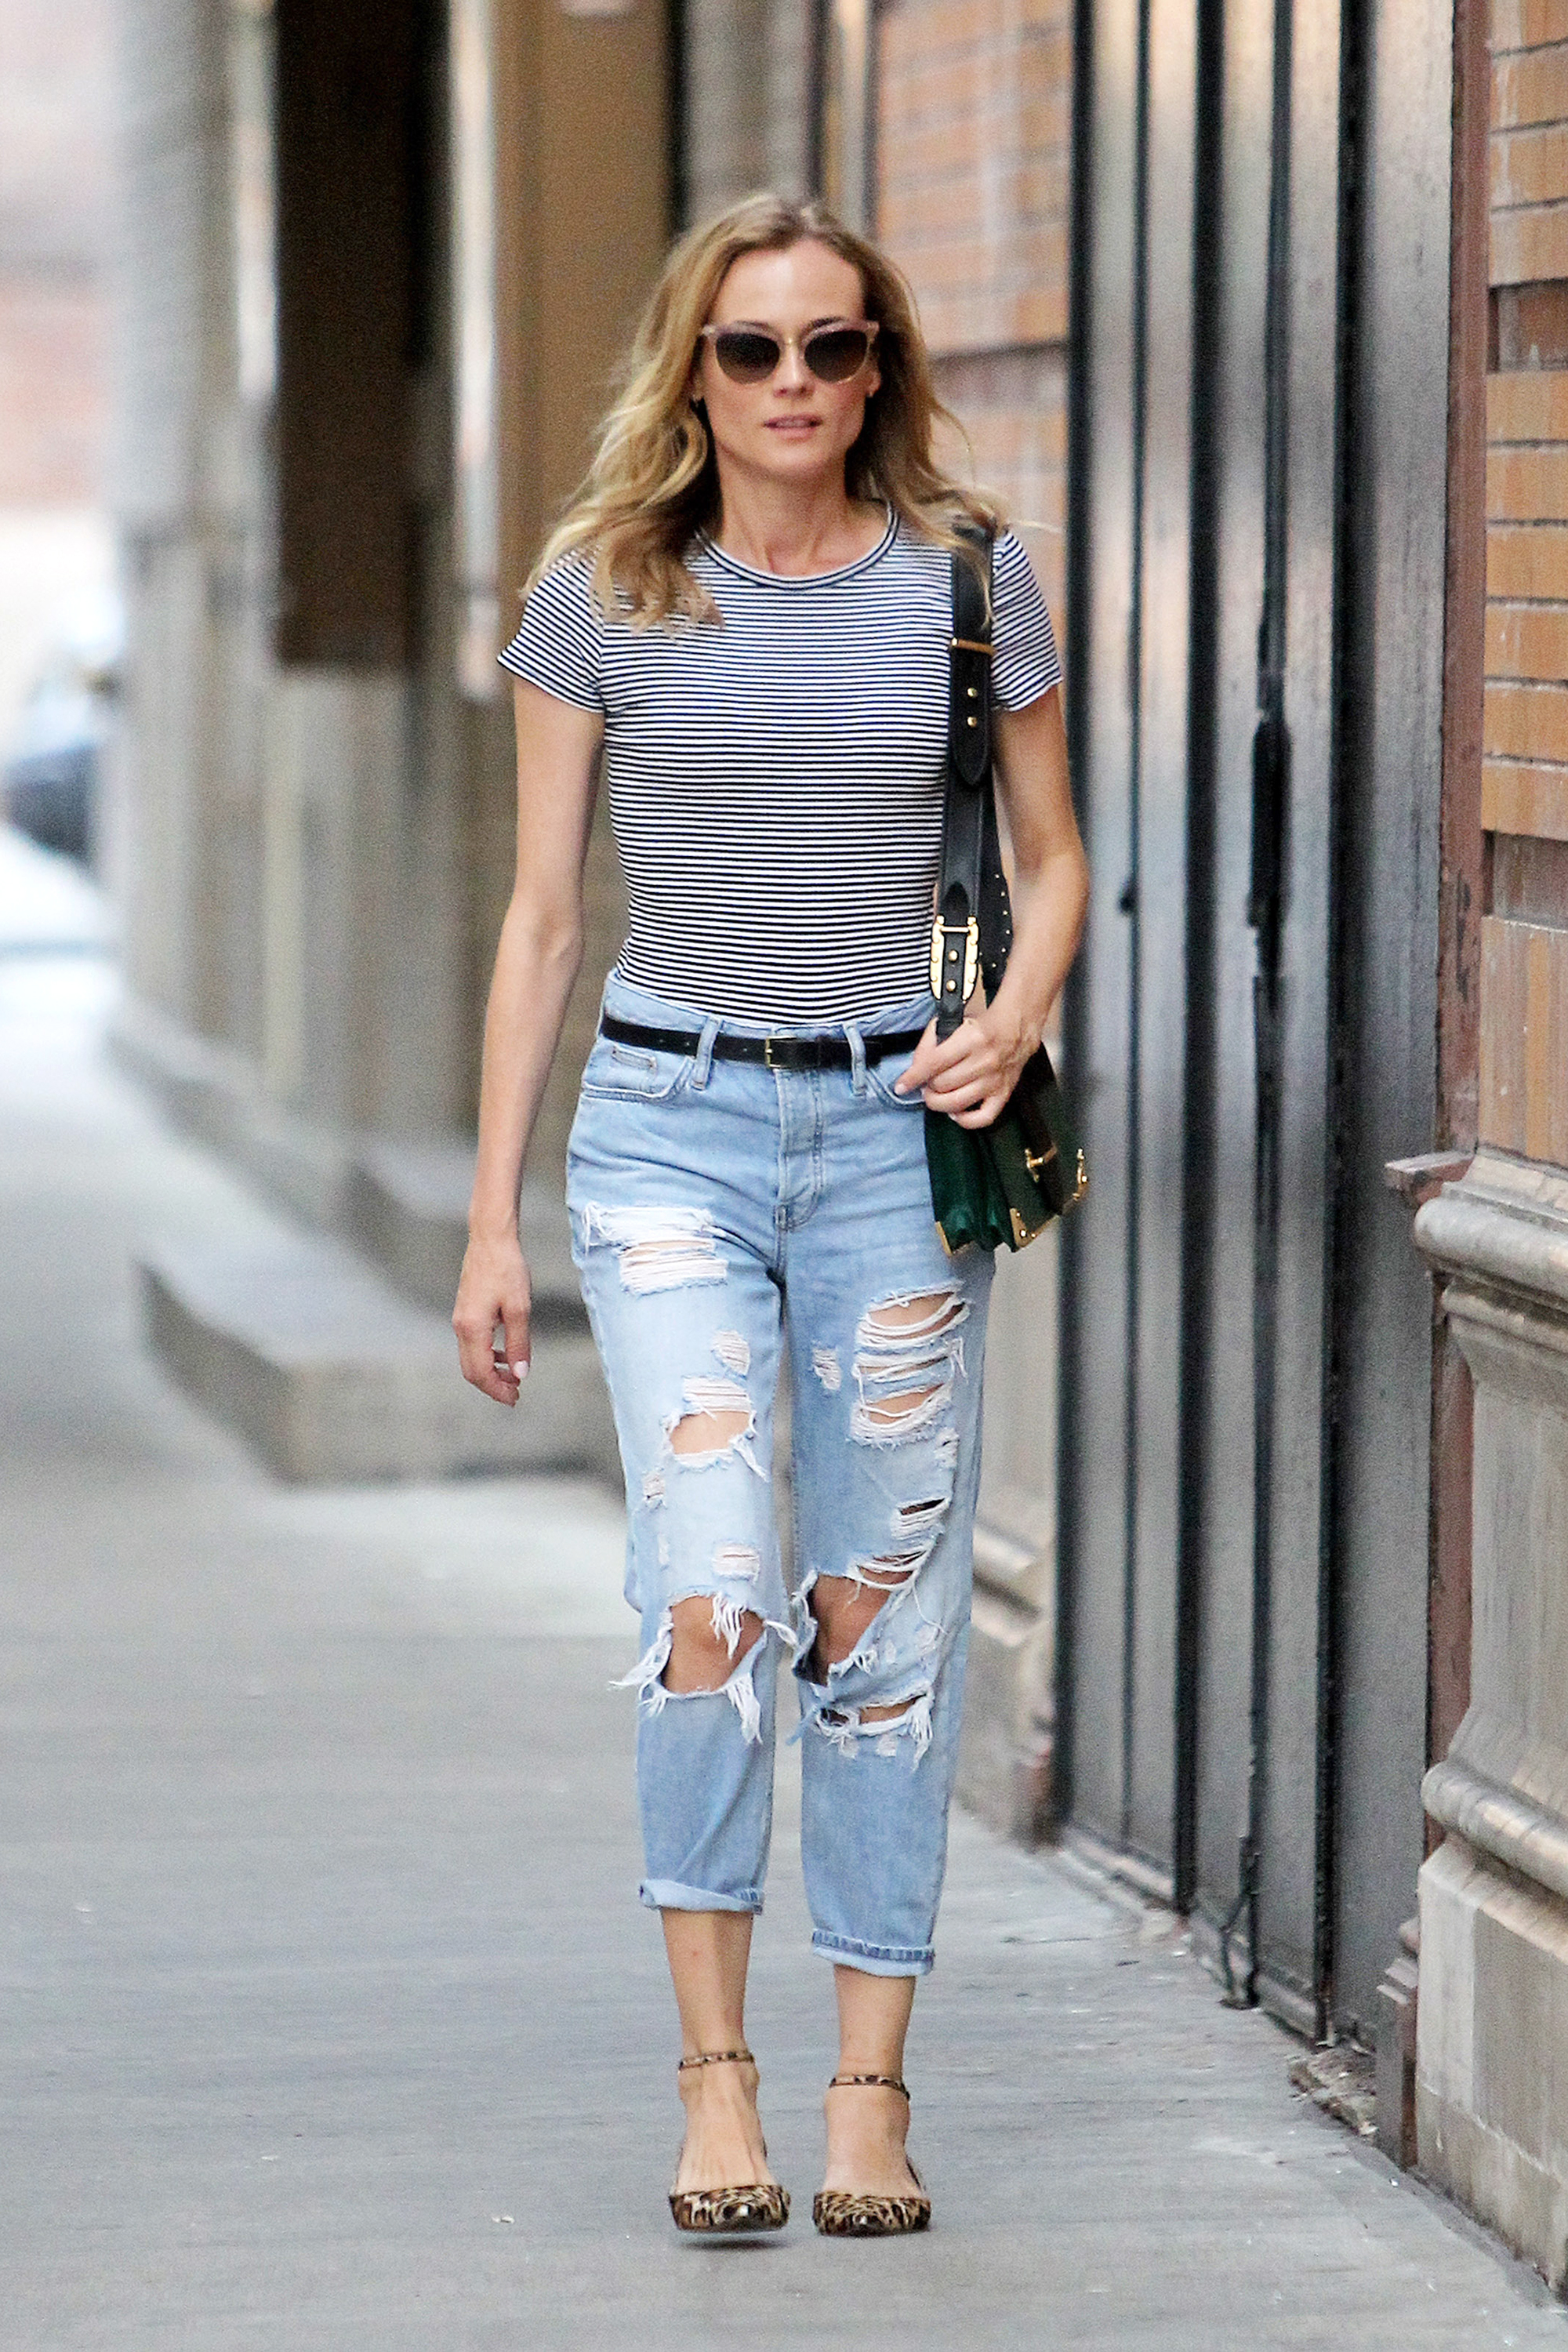 Ever since Katie Holmes debuted the boyfriend jean, girls everywhere have adopted them without looking back. Make a commitment to casual denim with these boyfriend jeans that top our list.